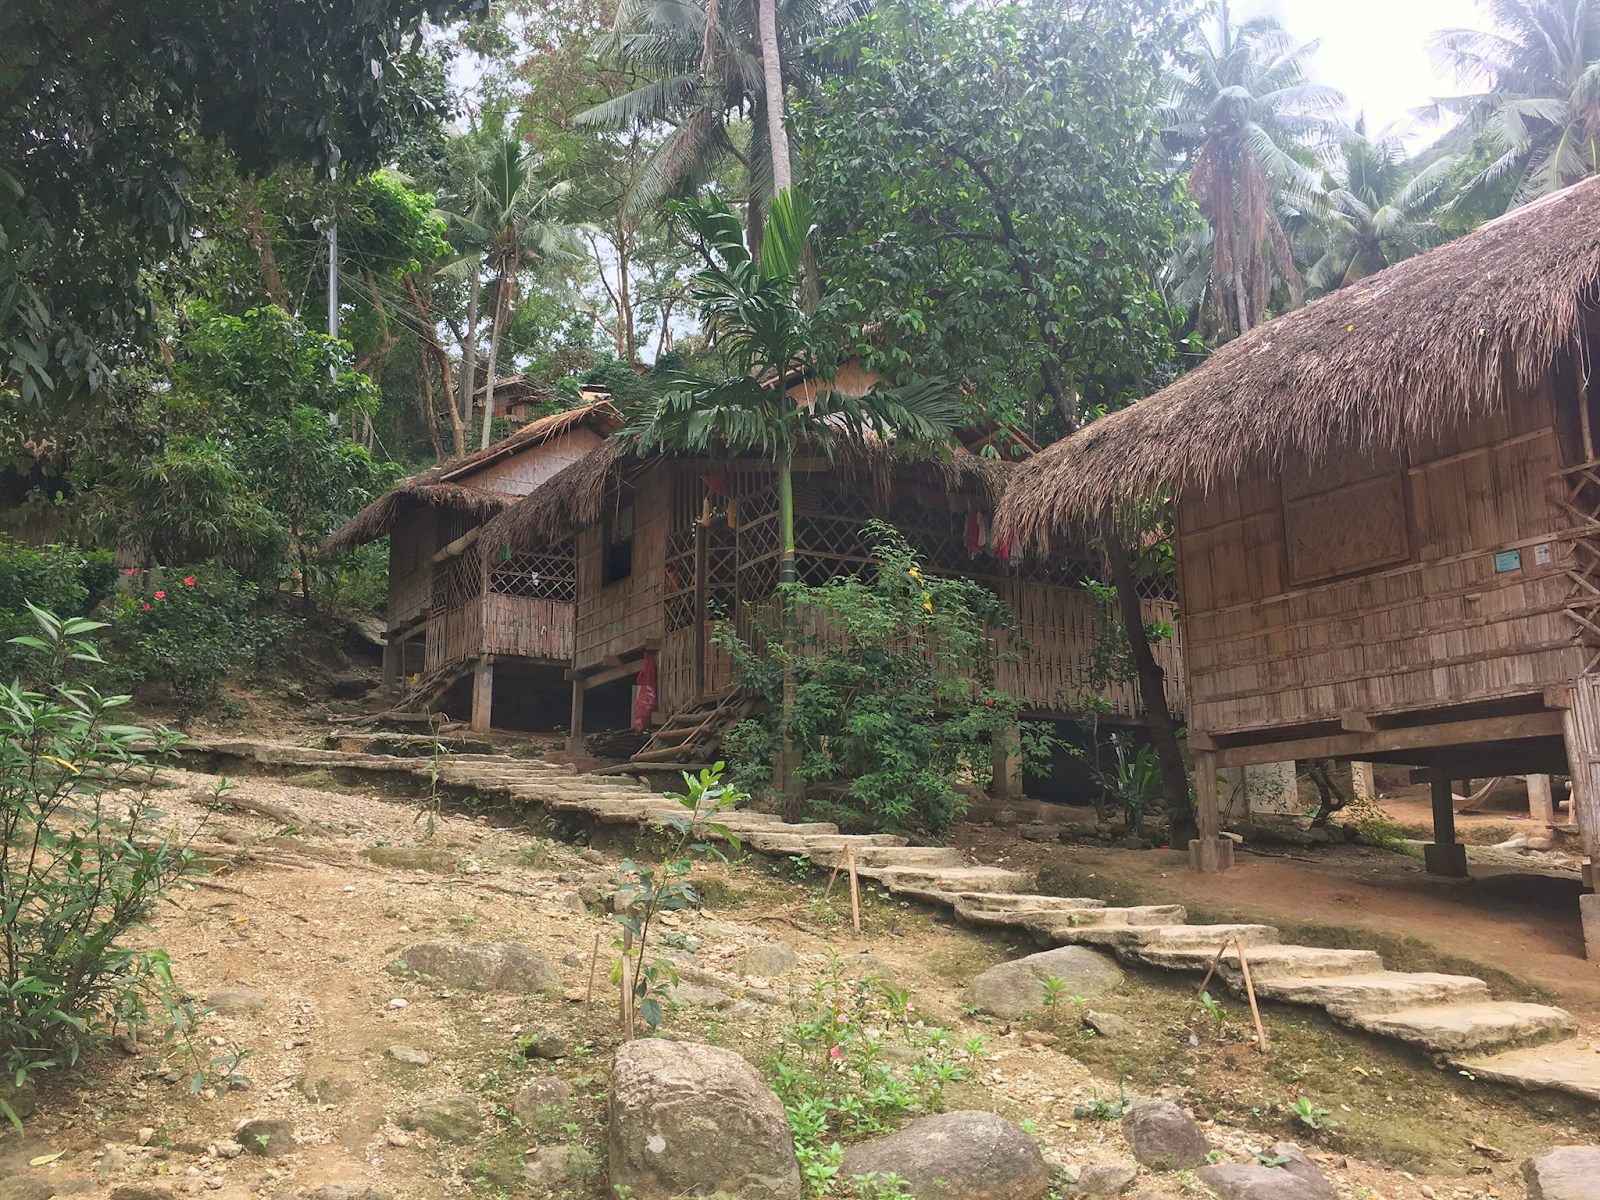 DIY GUIDE TO MANGYAN VILLAGE PUERTO GALERA